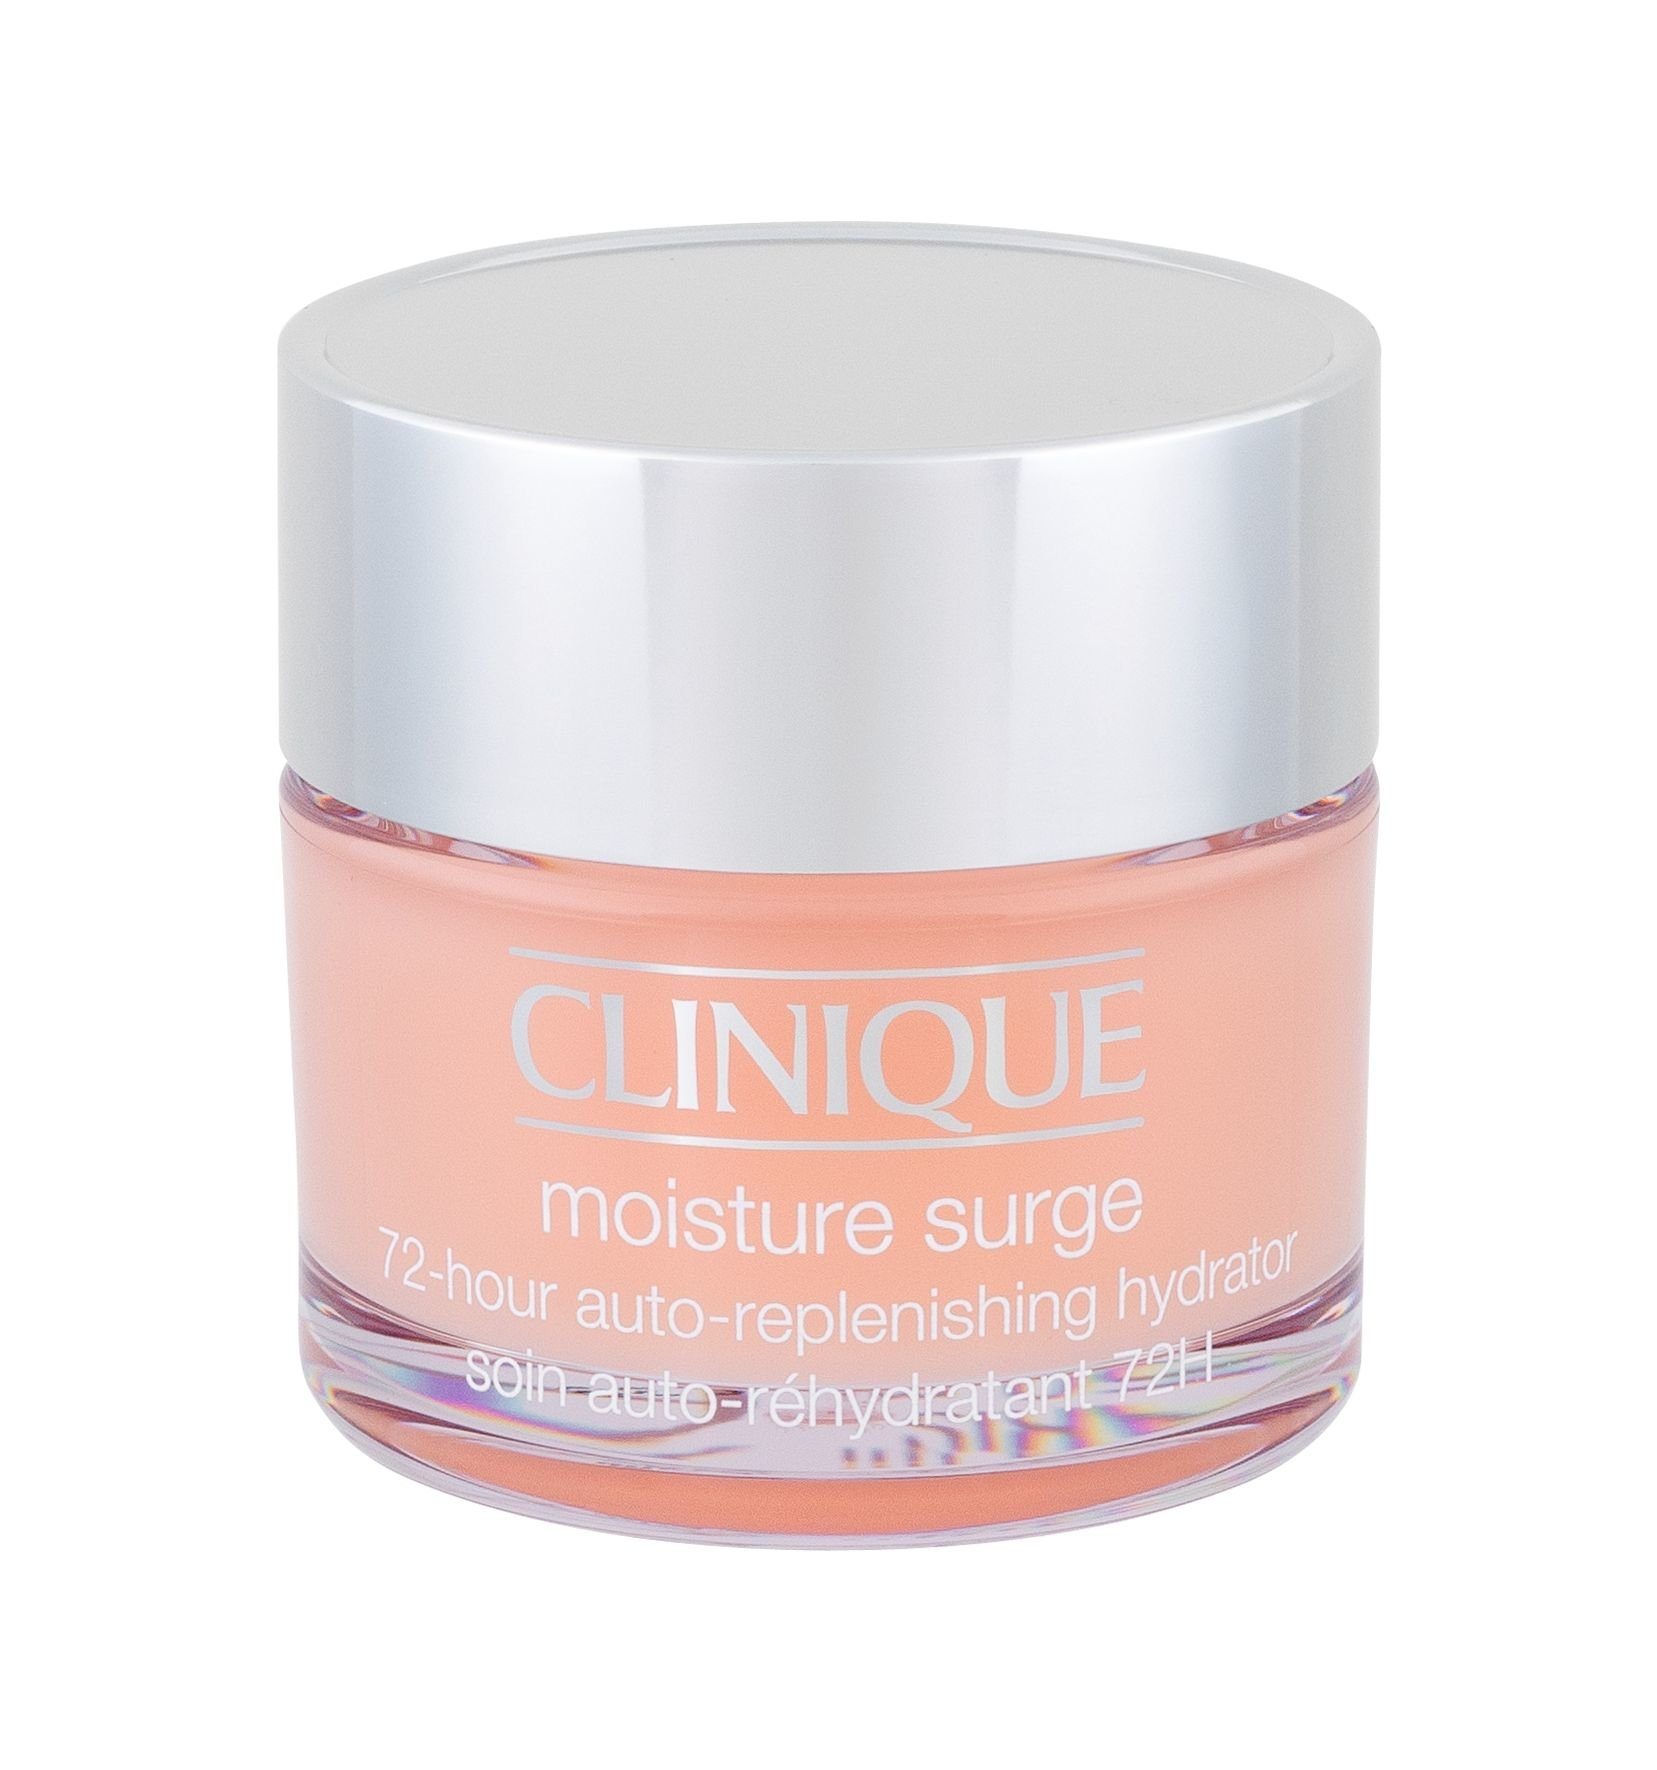 Clinique Moisture Surge Day Cream 50ml  72-hour